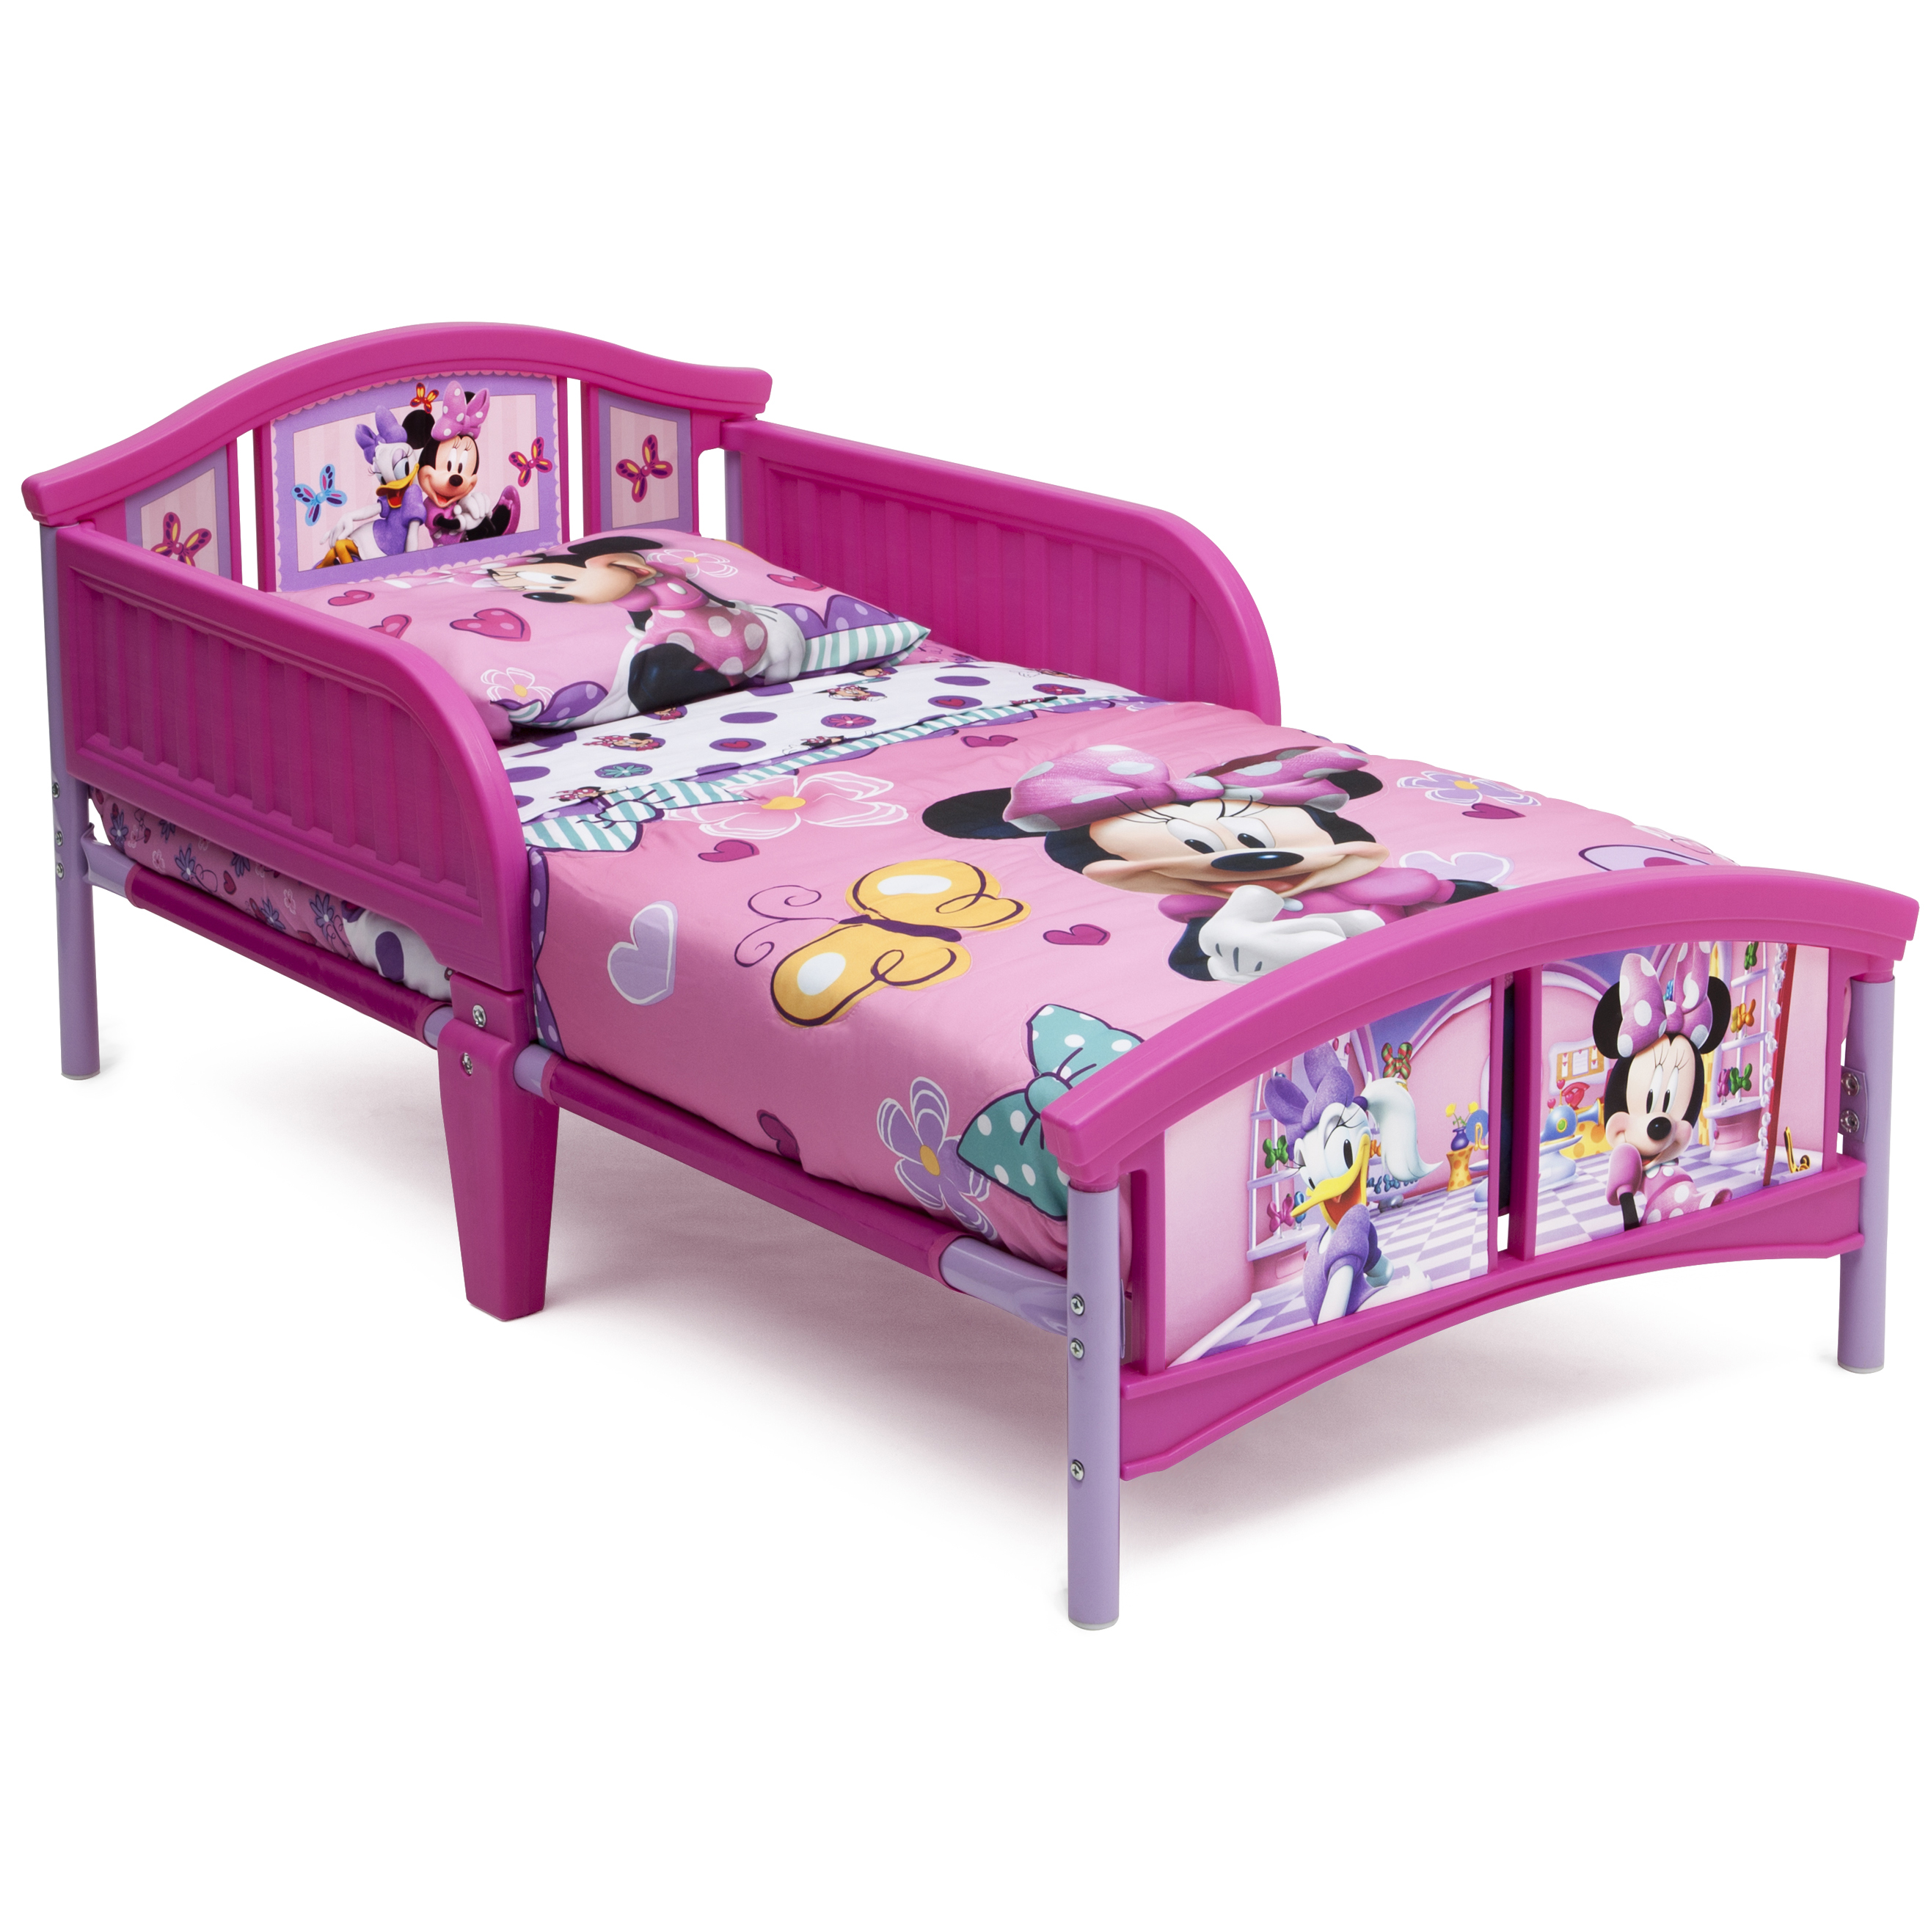 Minnie Mouse Plastic Toddler Bed  sc 1 st  Walmart & Minnie Mouse Plastic Toddler Bed - Walmart.com